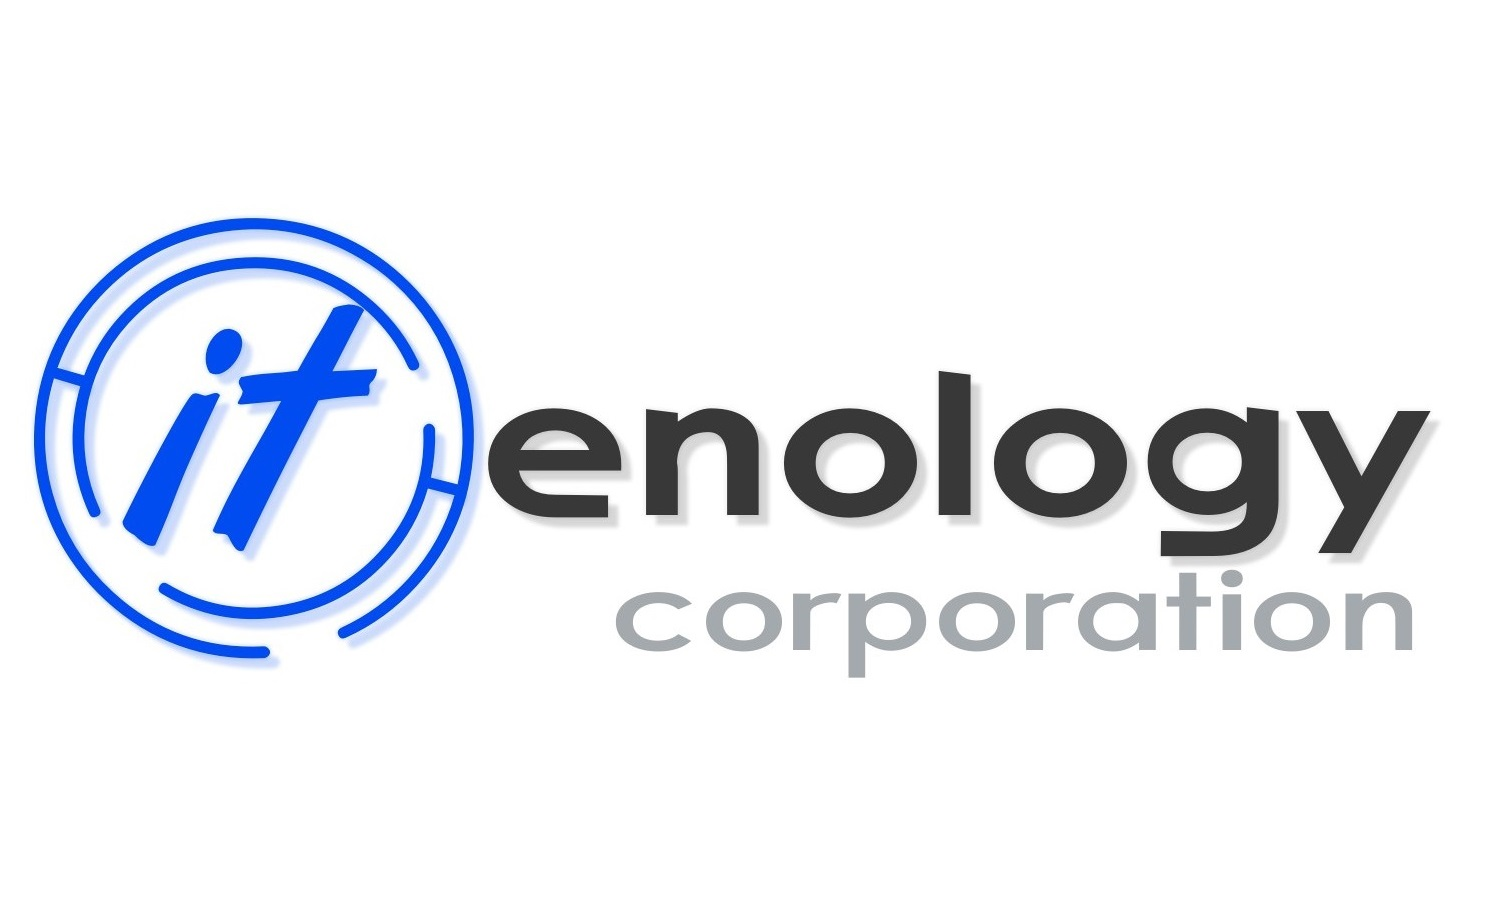 Itenology Corporation